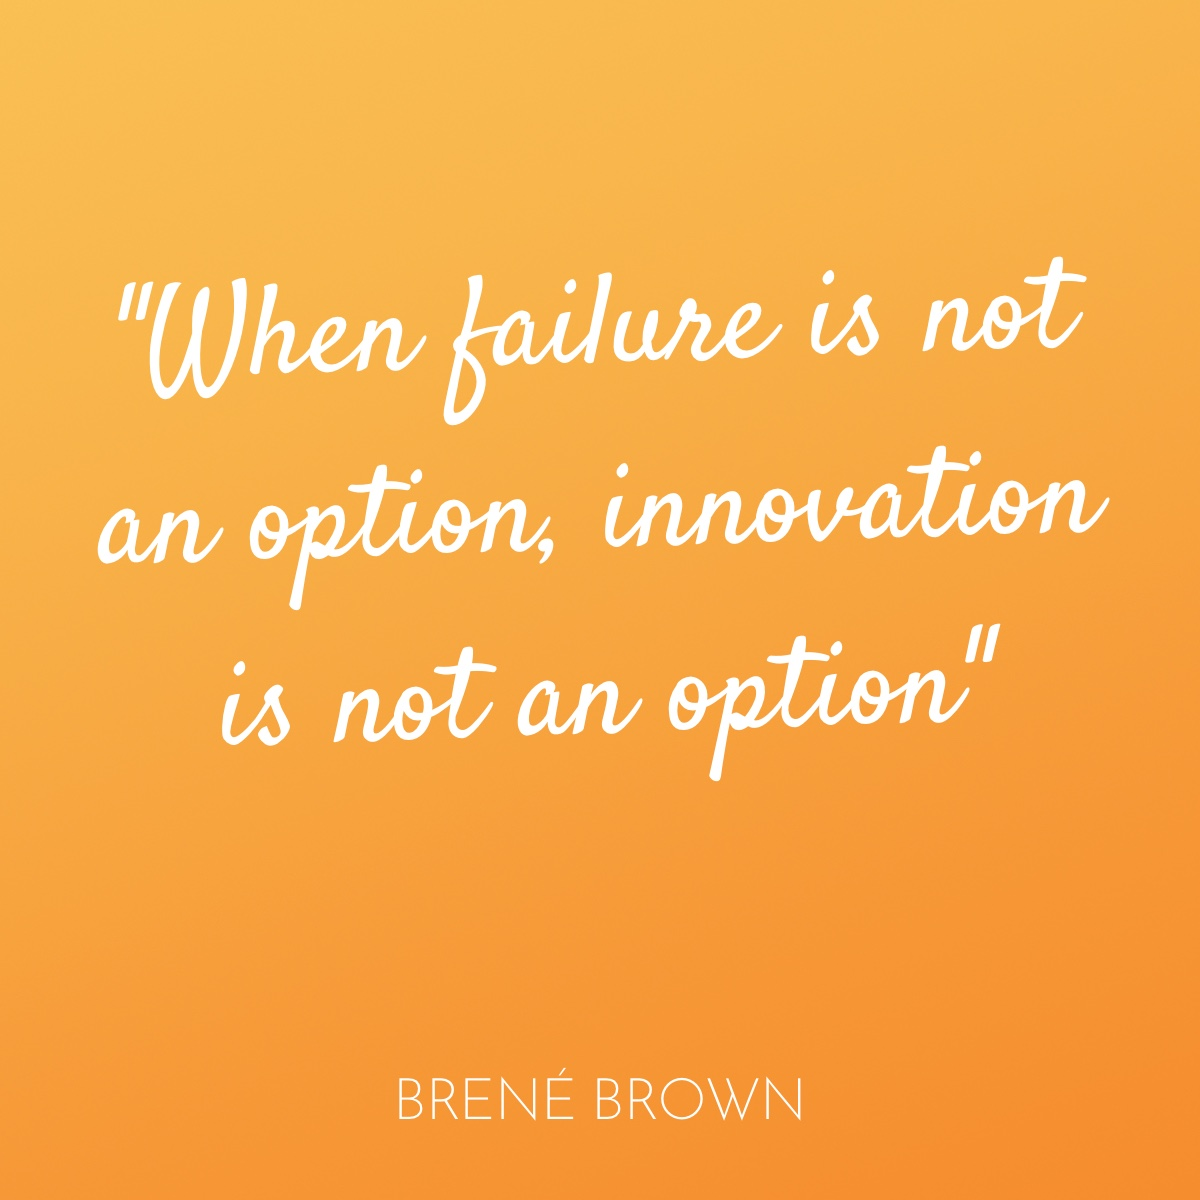 When failure is not an option innovation is not an option